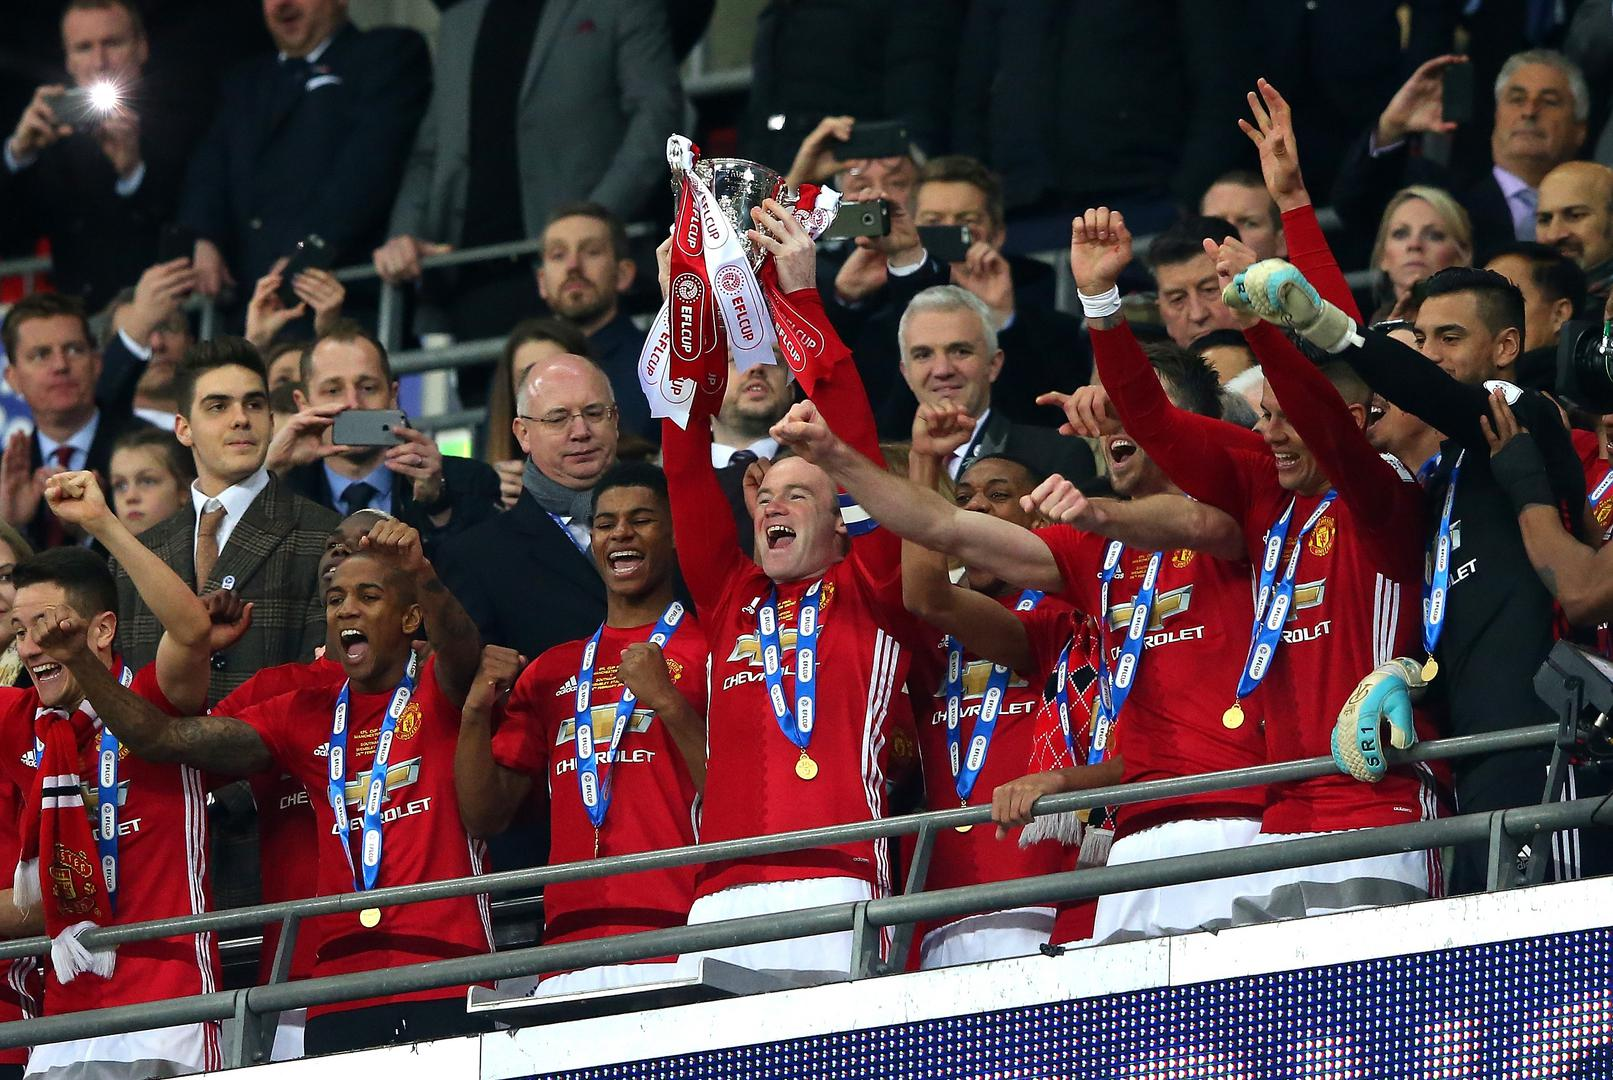 Wayne Rooney lifts the League Cup.